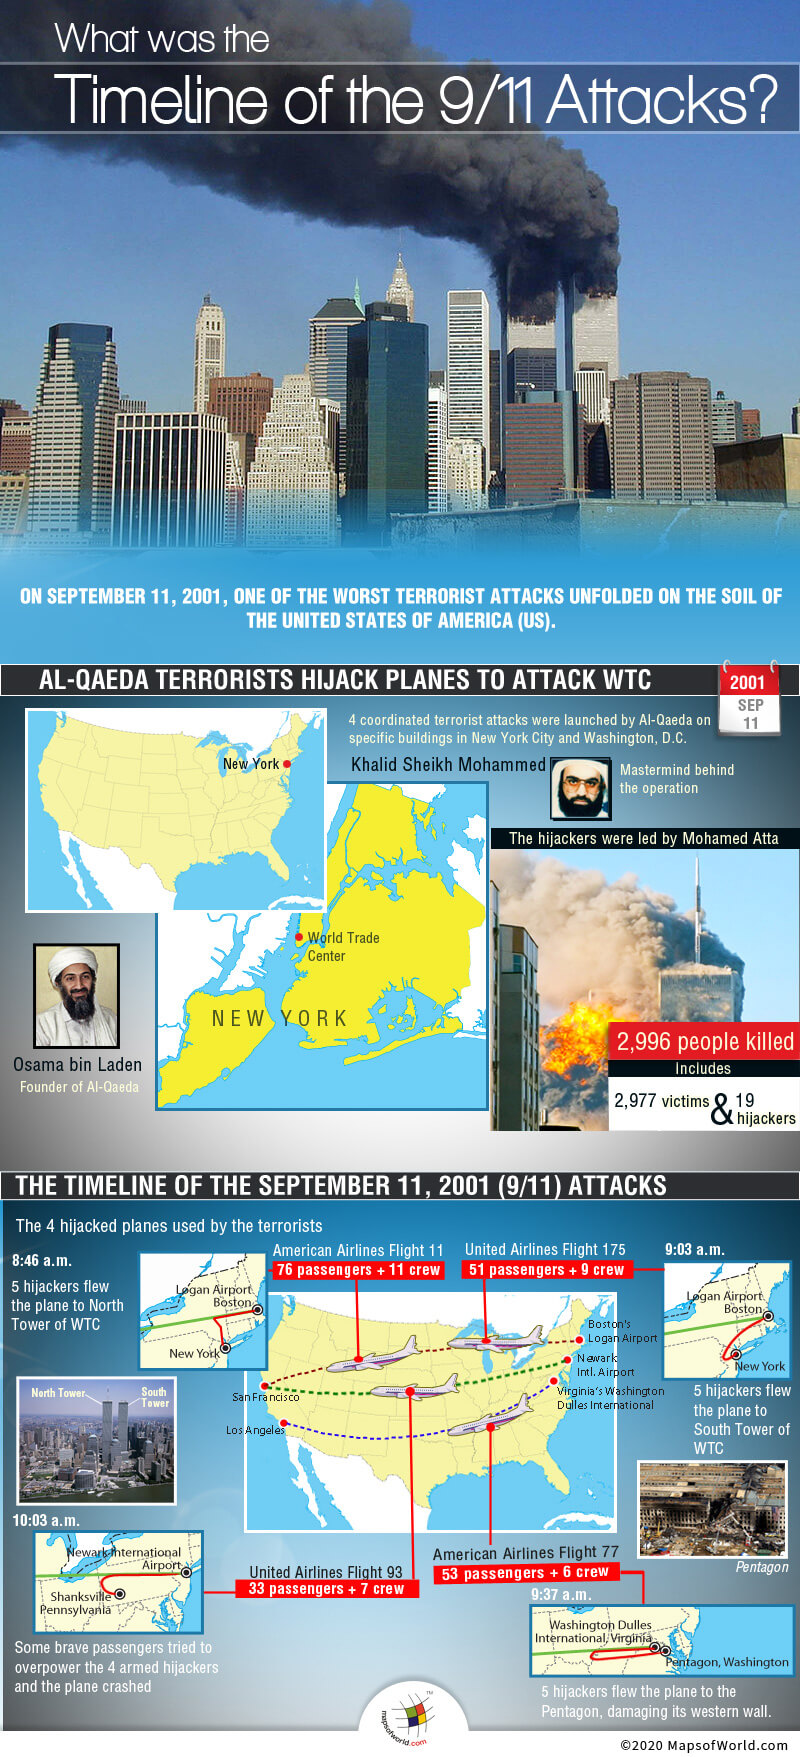 Infographic - Timeline of the September 11, 2001 (9/11) Attacks